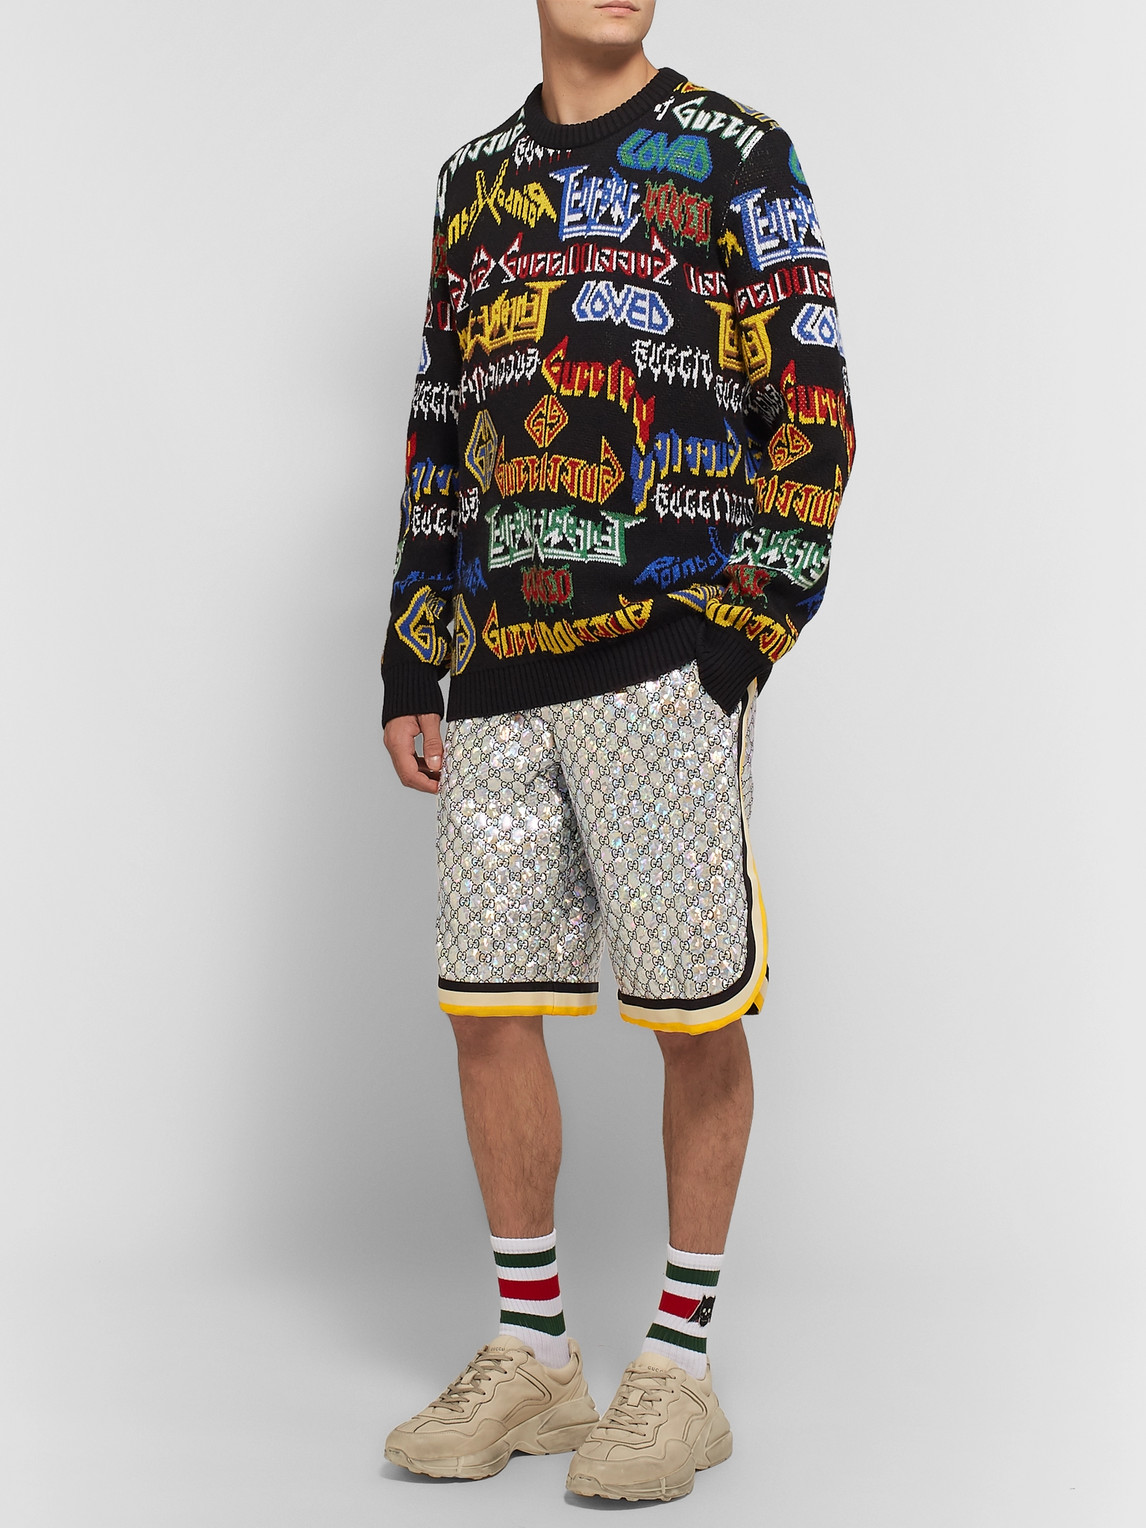 Gucci Shorts WEBBING-TRIMMED LOGO-EMBROIDERED IRIDESCENT JERSEY SHORTS